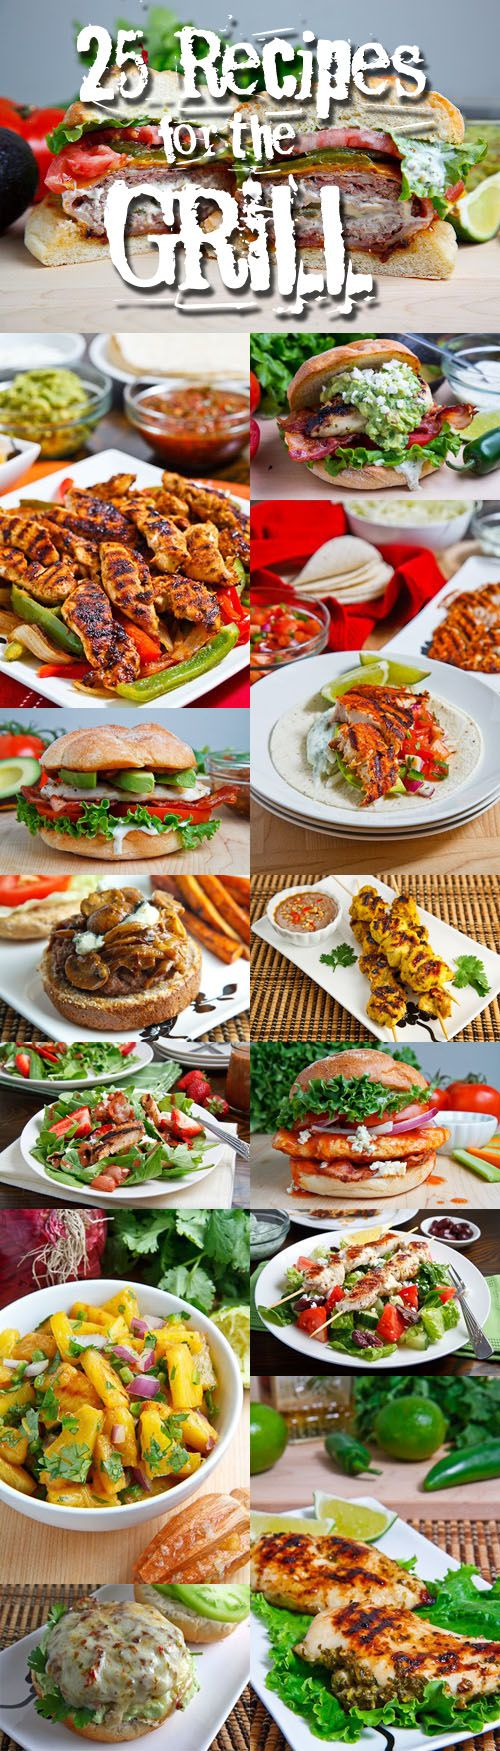 25 Recipes for the Grill. Great ideas, reminder of some old favorites. Lots of diversity.